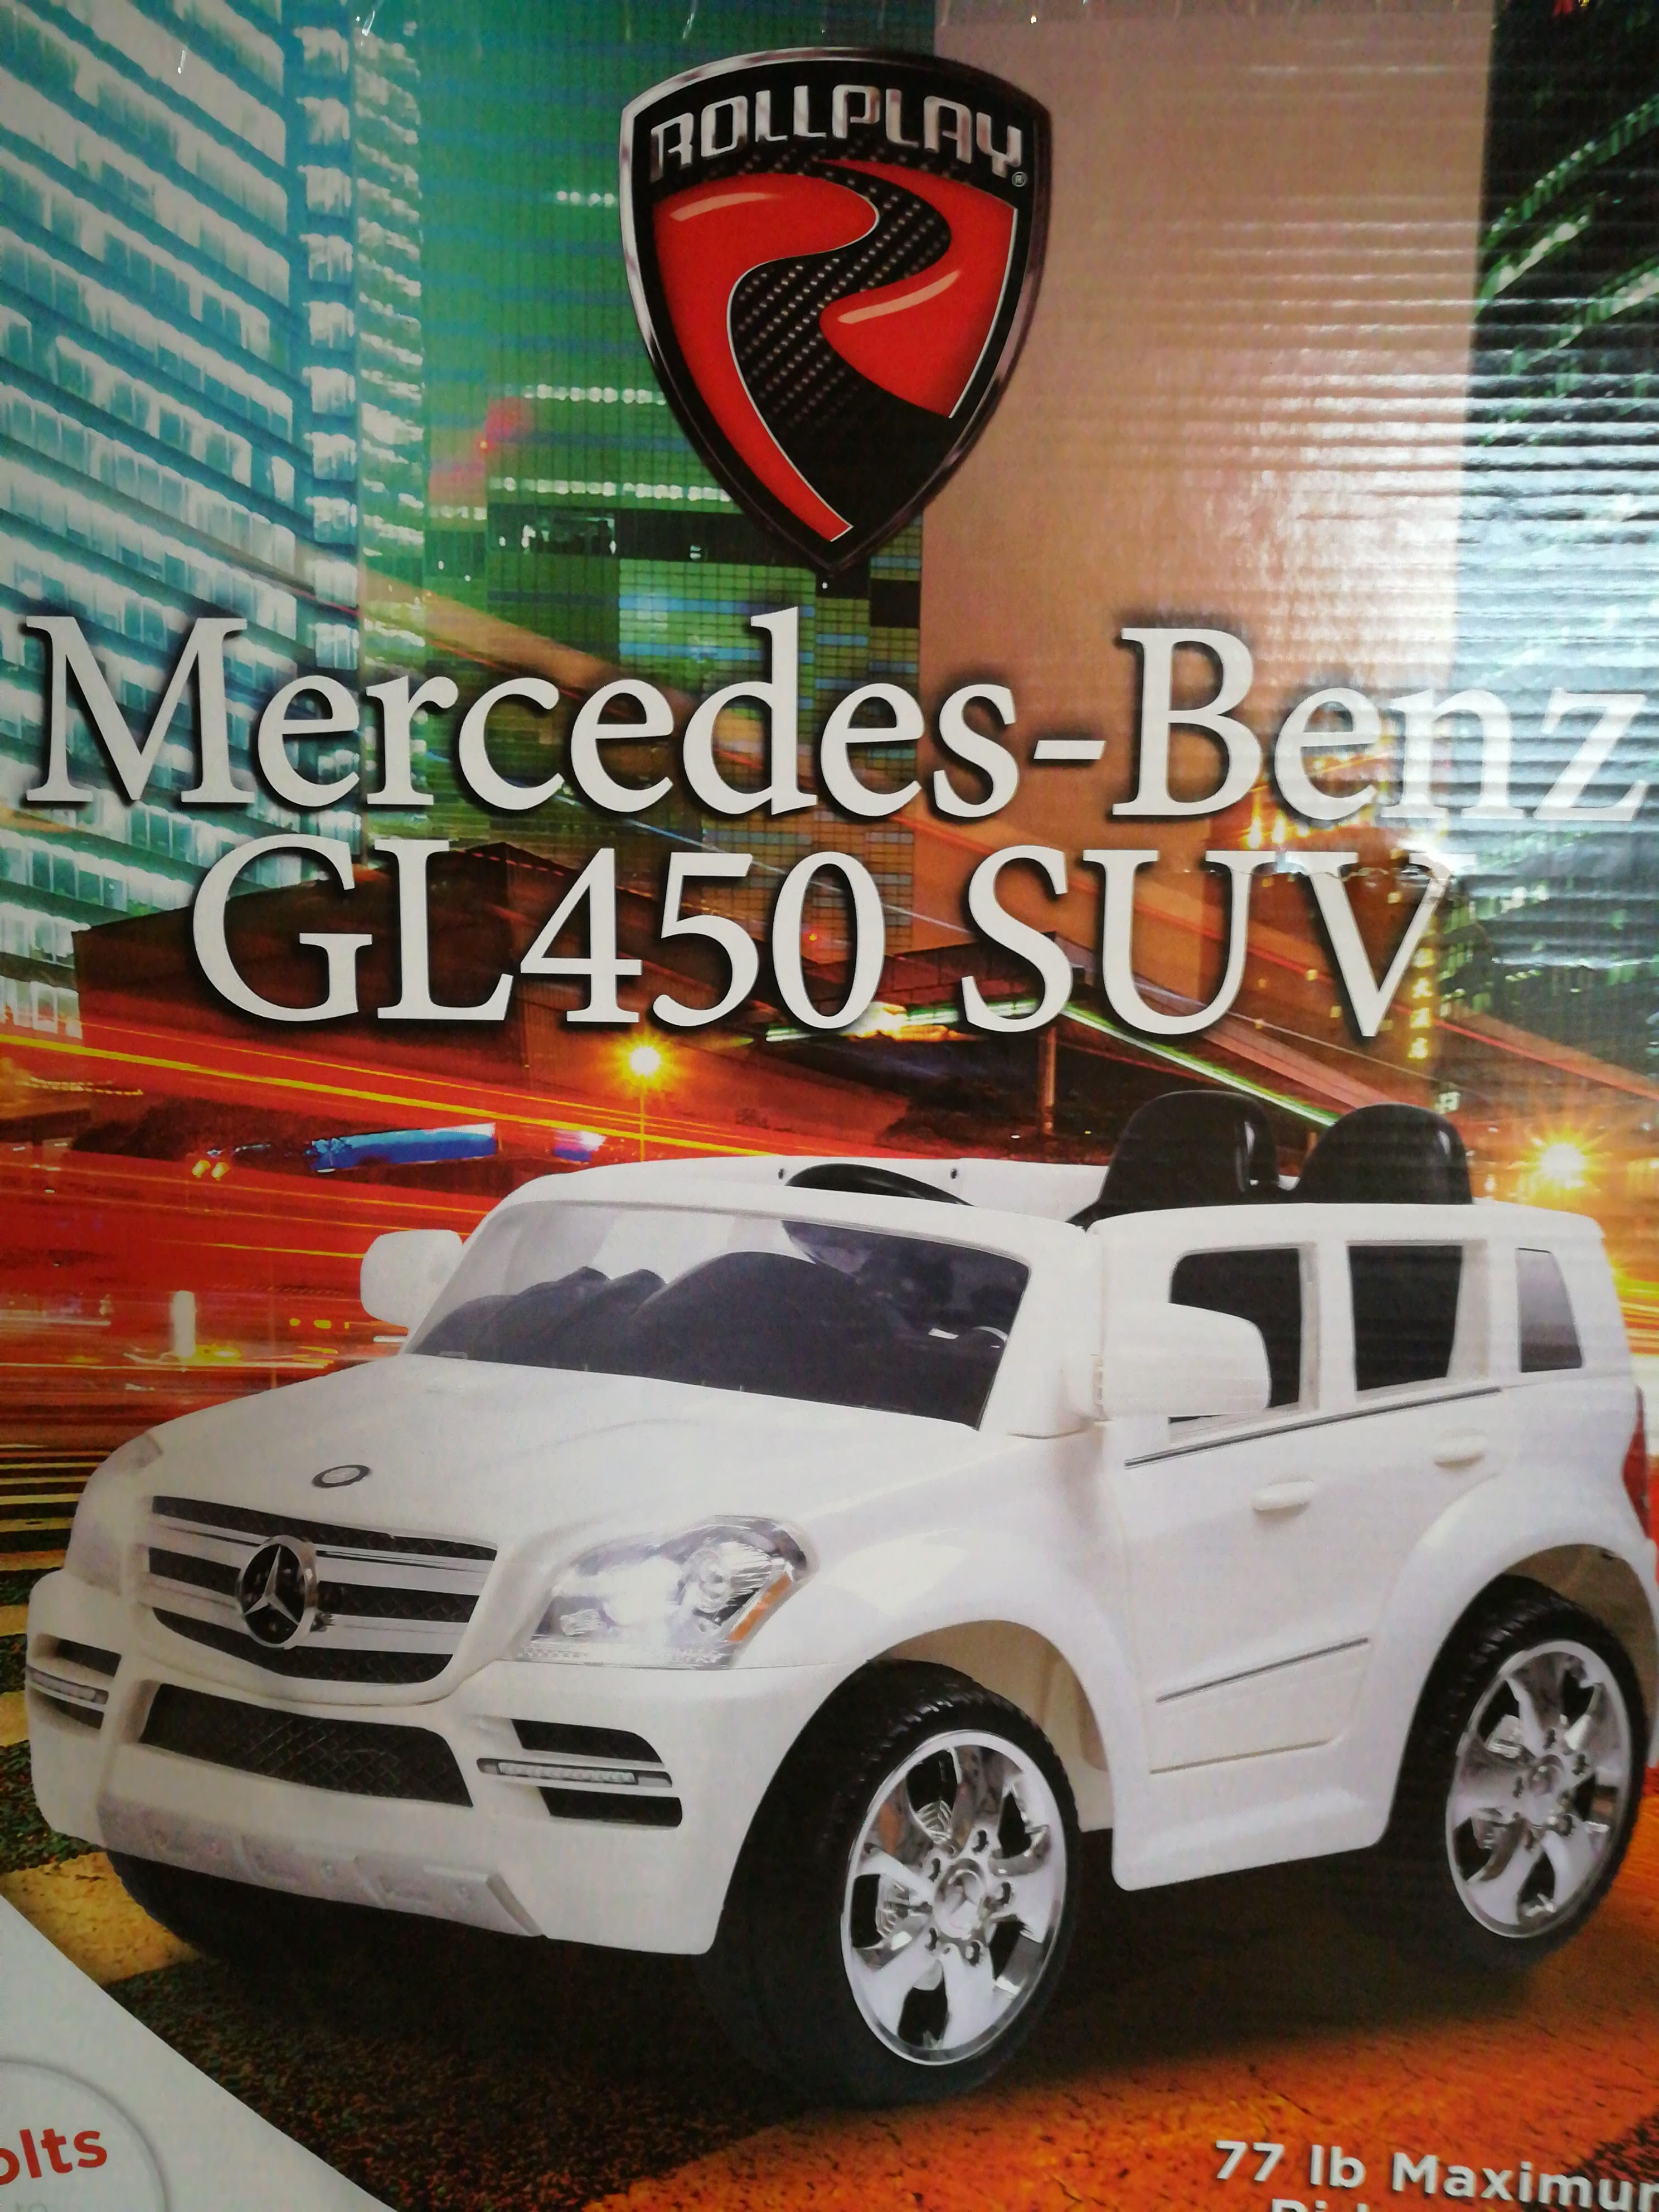 Rollplay Kids' Ride On 6V Mercedes Benz GL450 SUV - White - Target BM - $59.98